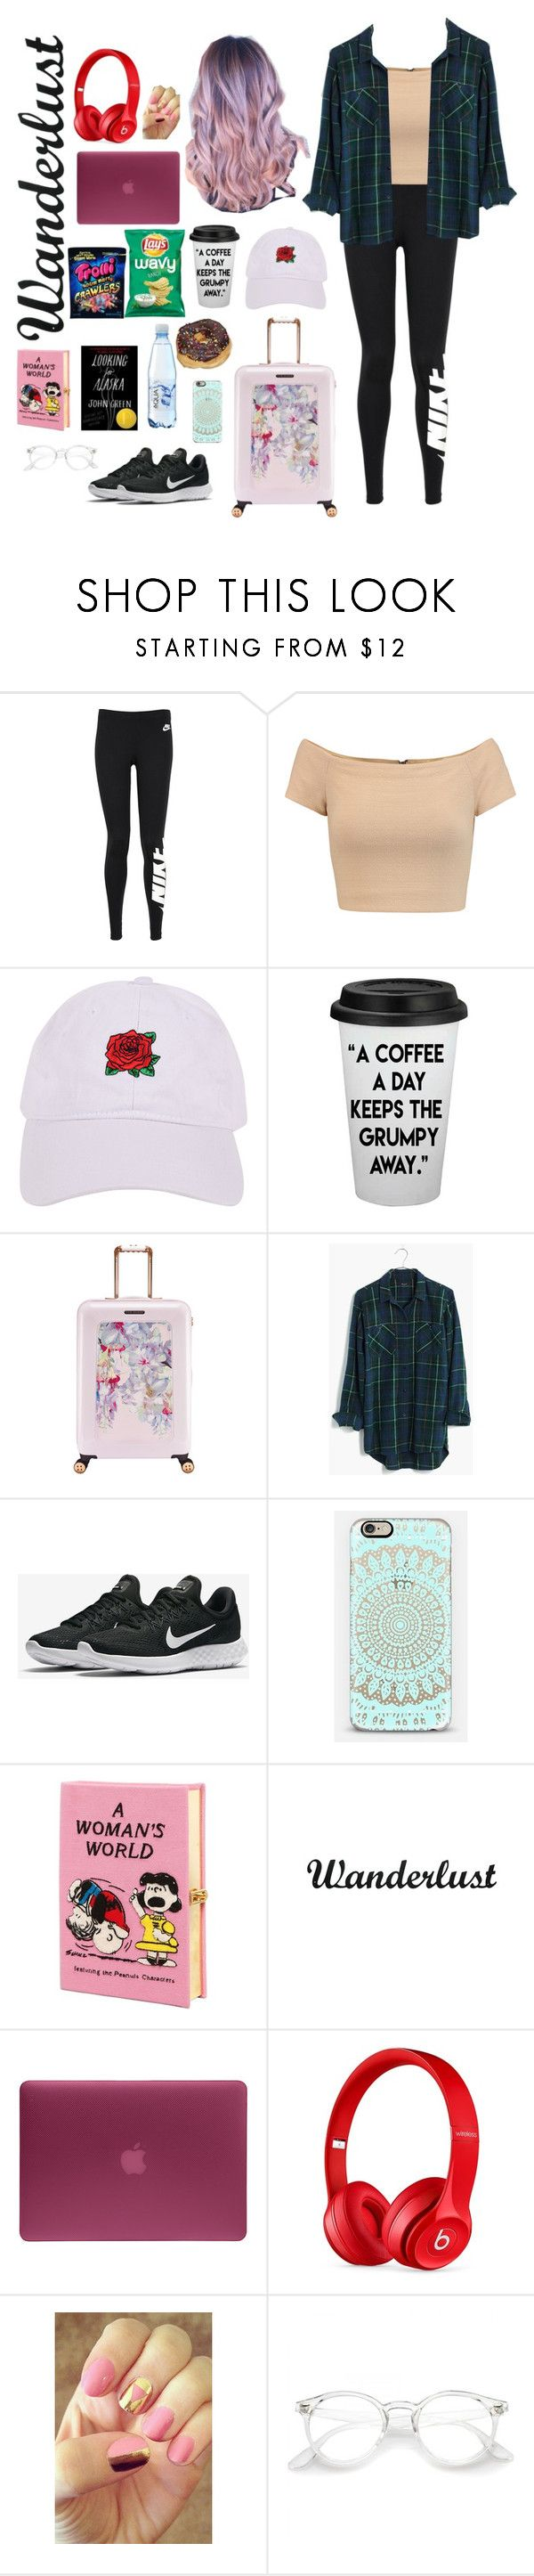 """""""Airport Outfit"""" by shagurl ❤ liked on Polyvore featuring NIKE, Alice + Olivia, Armitage Avenue, Ted Baker, Madewell, Olympia Le-Tan, Incase, Beats by Dr. Dre and Rad Nails"""